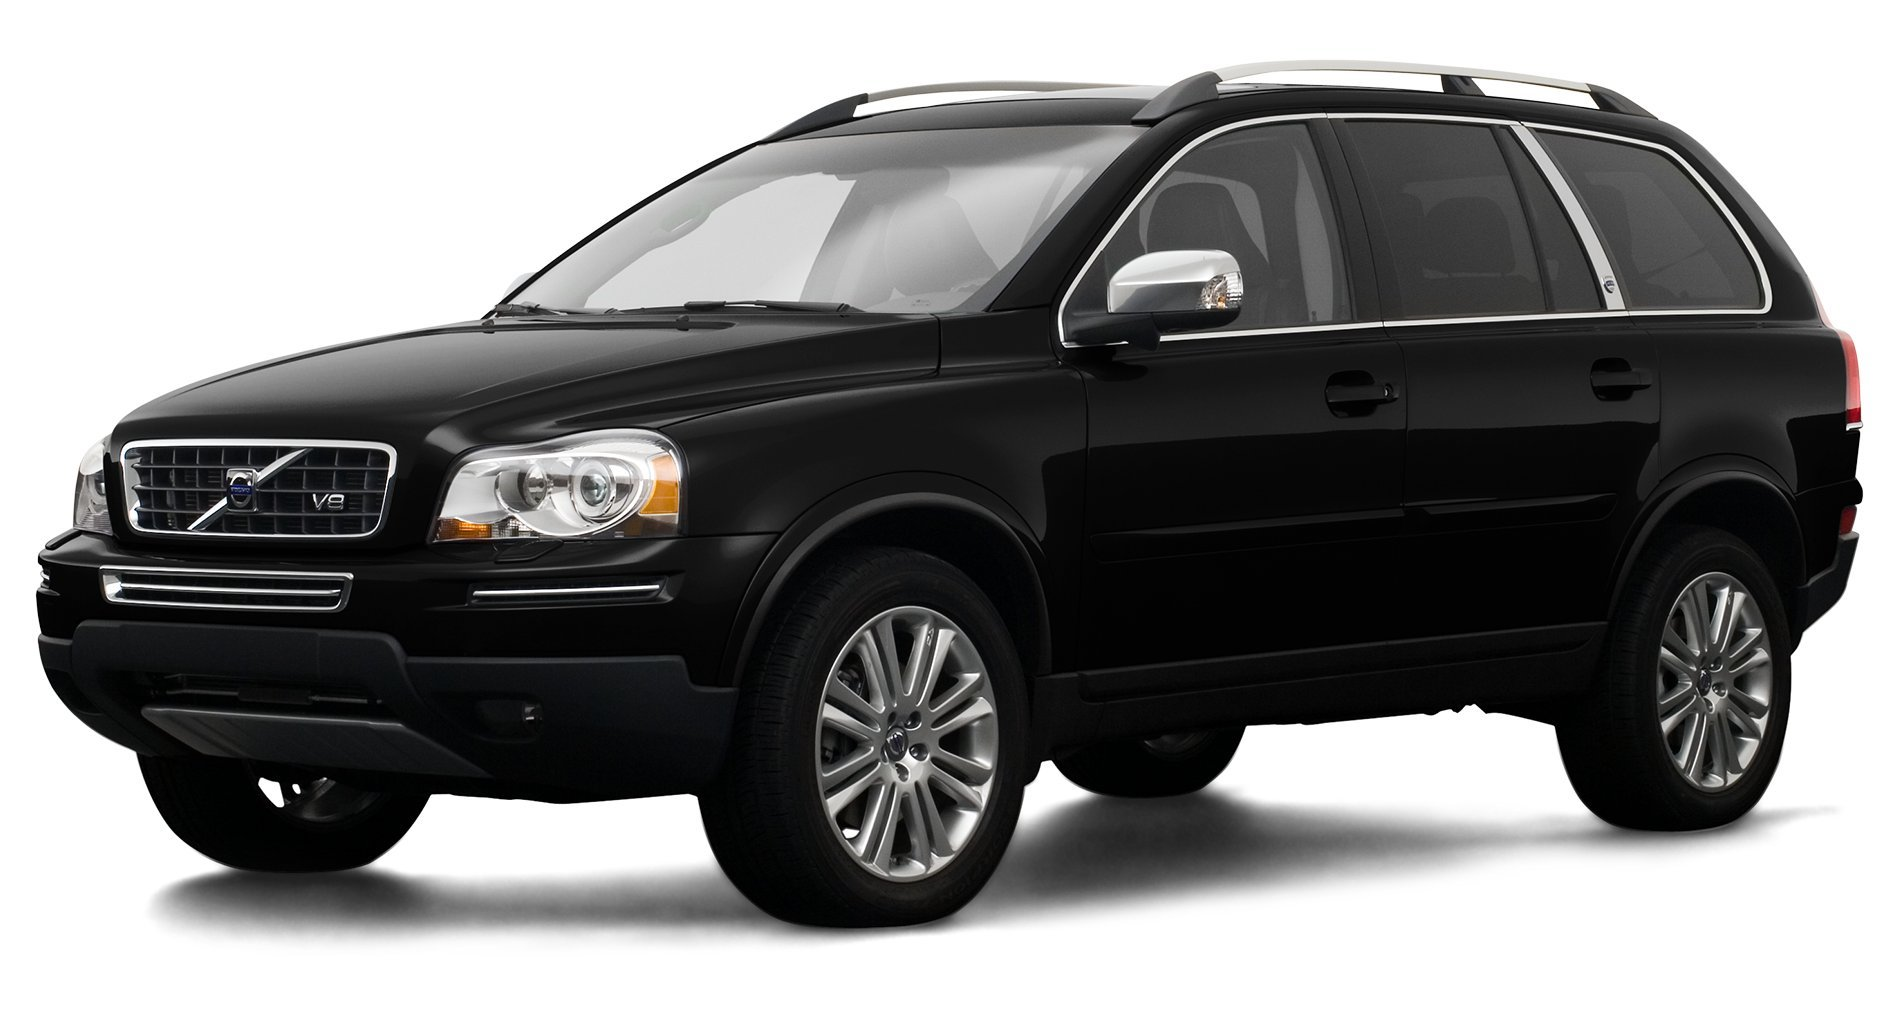 Amazon.com: 2008 Volvo XC90 Reviews, Images, and Specs ...